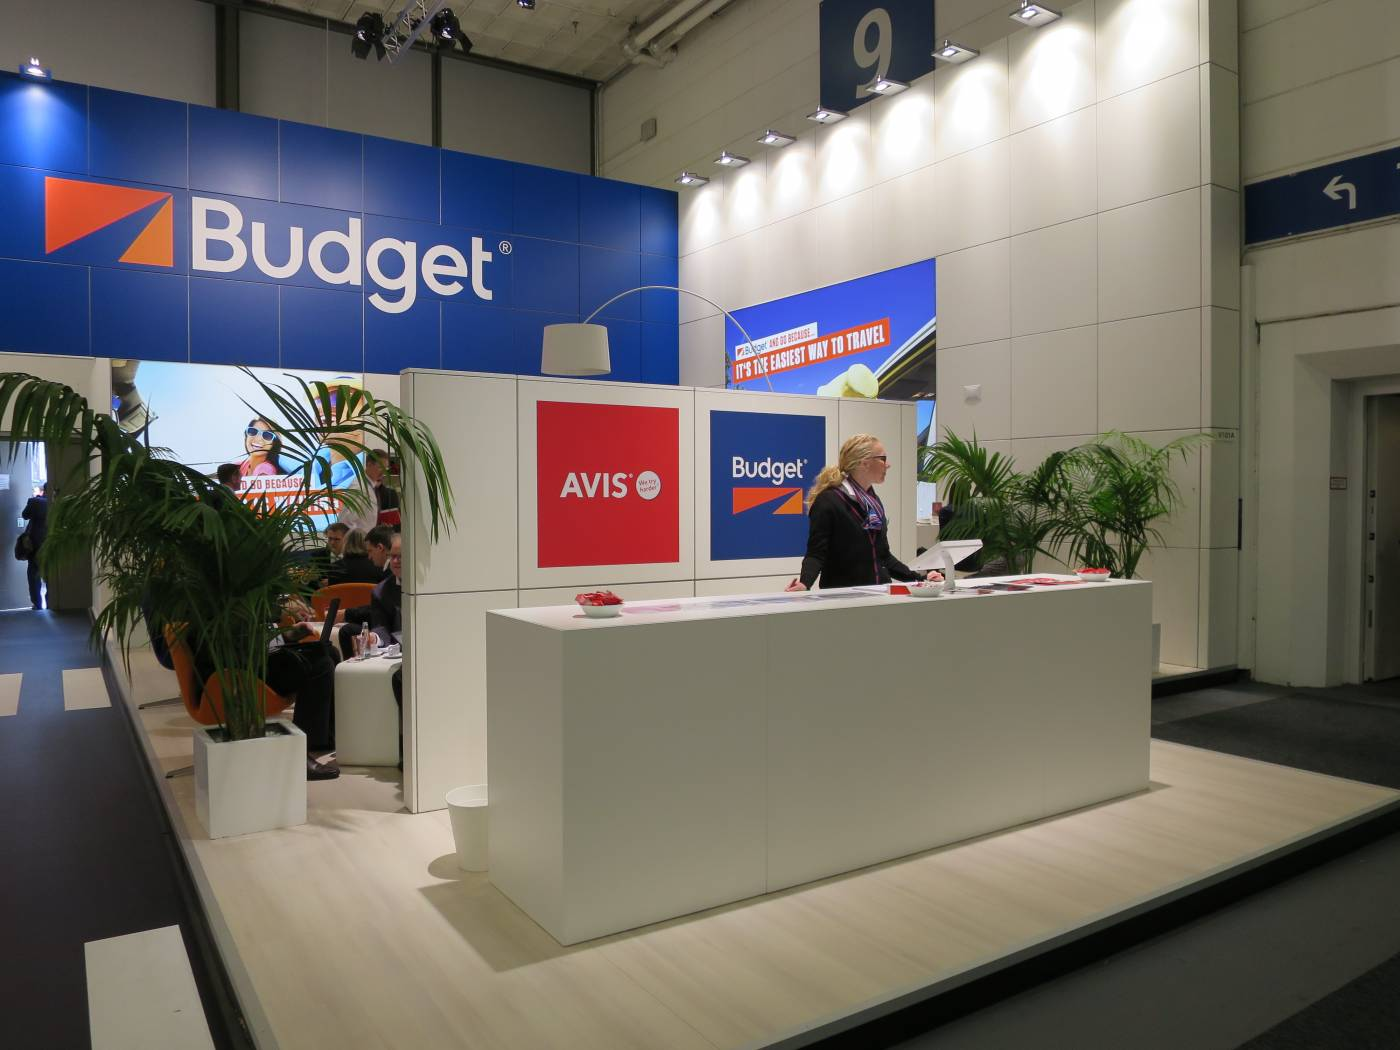 Budget & Avis car rental